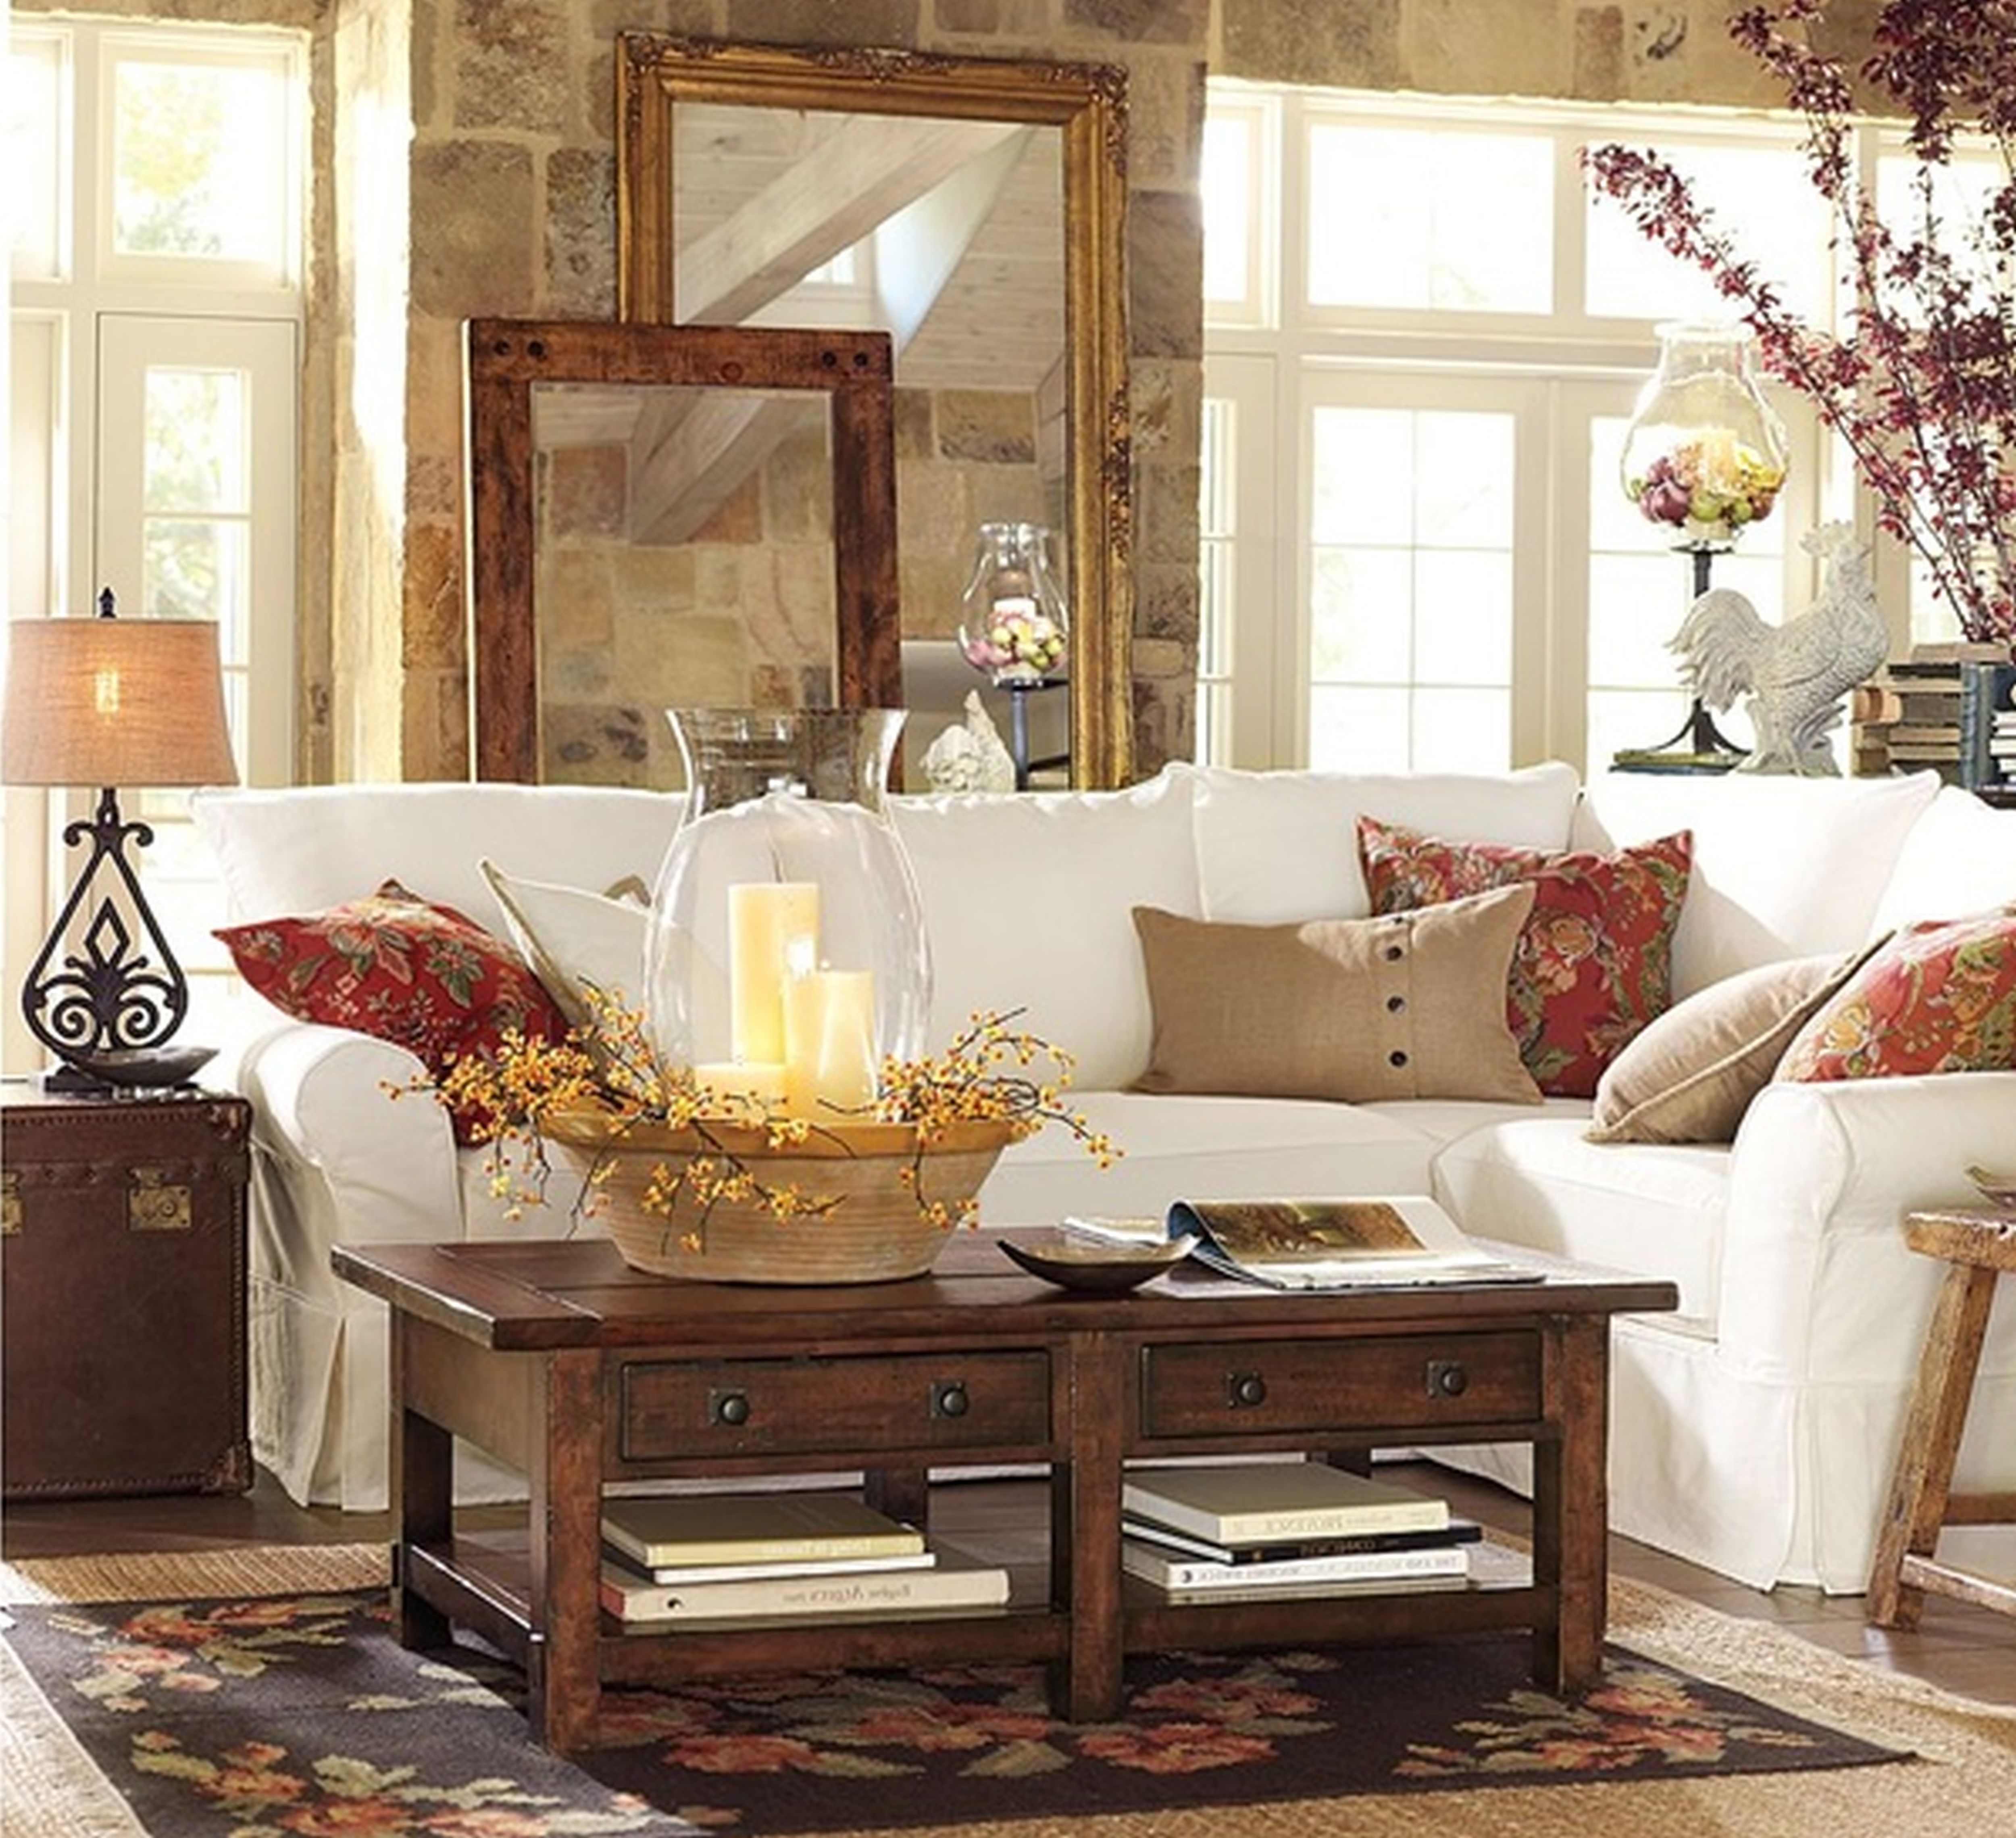 Pottery Barn Rooms In 2020 Pottery Barn Living Room House Decorating Ideas Bedroom Living Room Design Decor